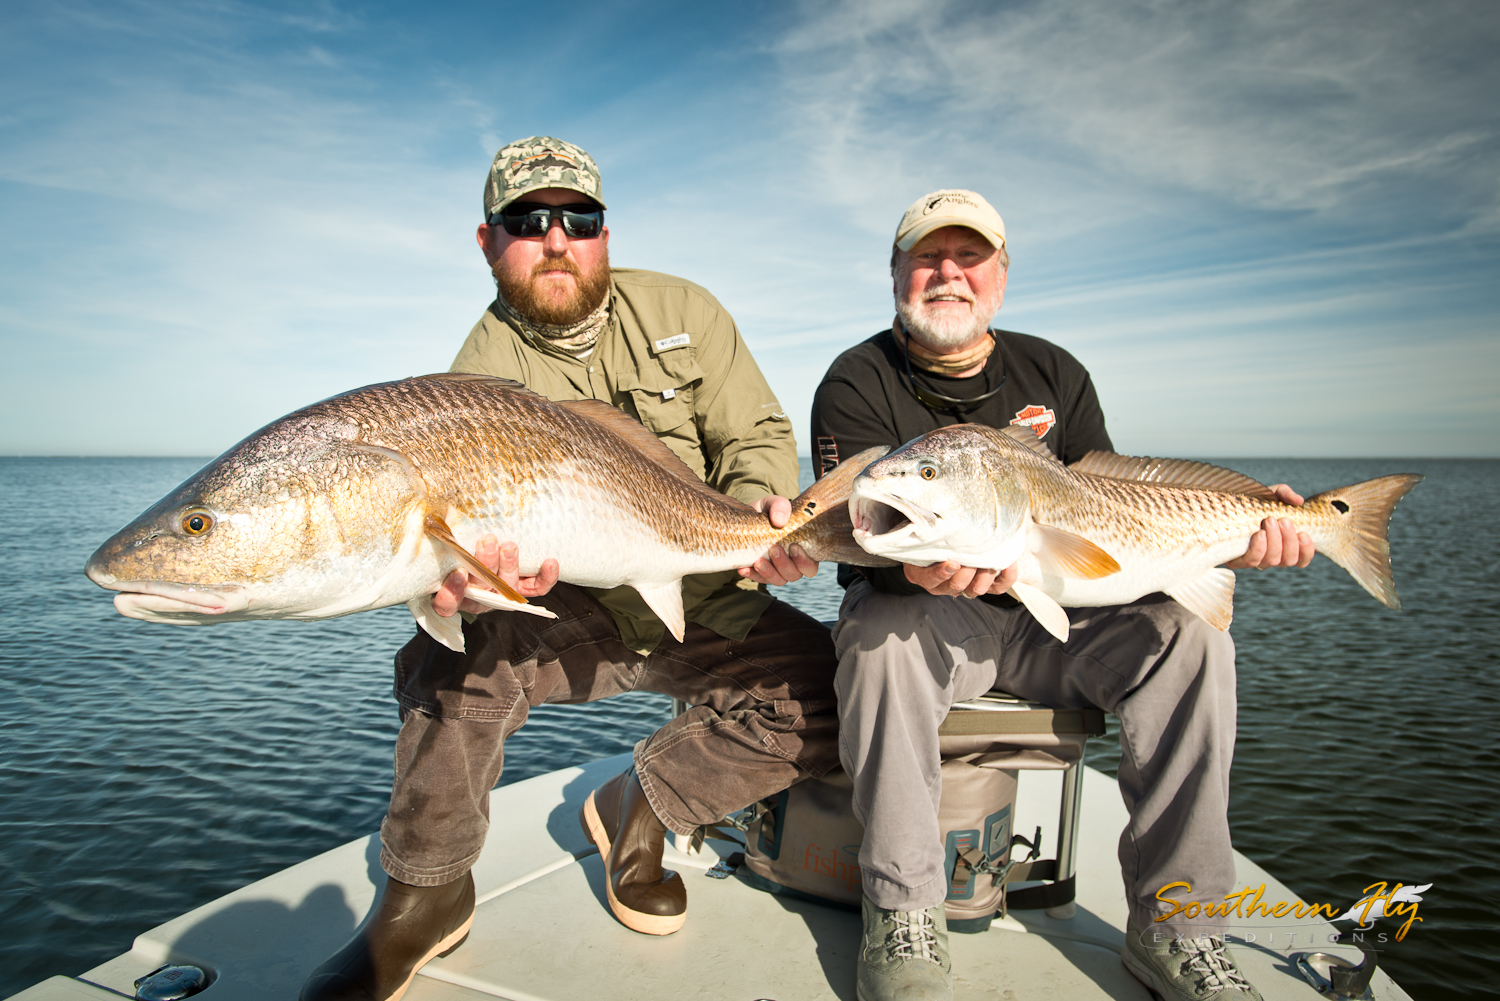 Fishing charters in Louisiana with Southern Fly Expeditions and Captain Brandon Keck